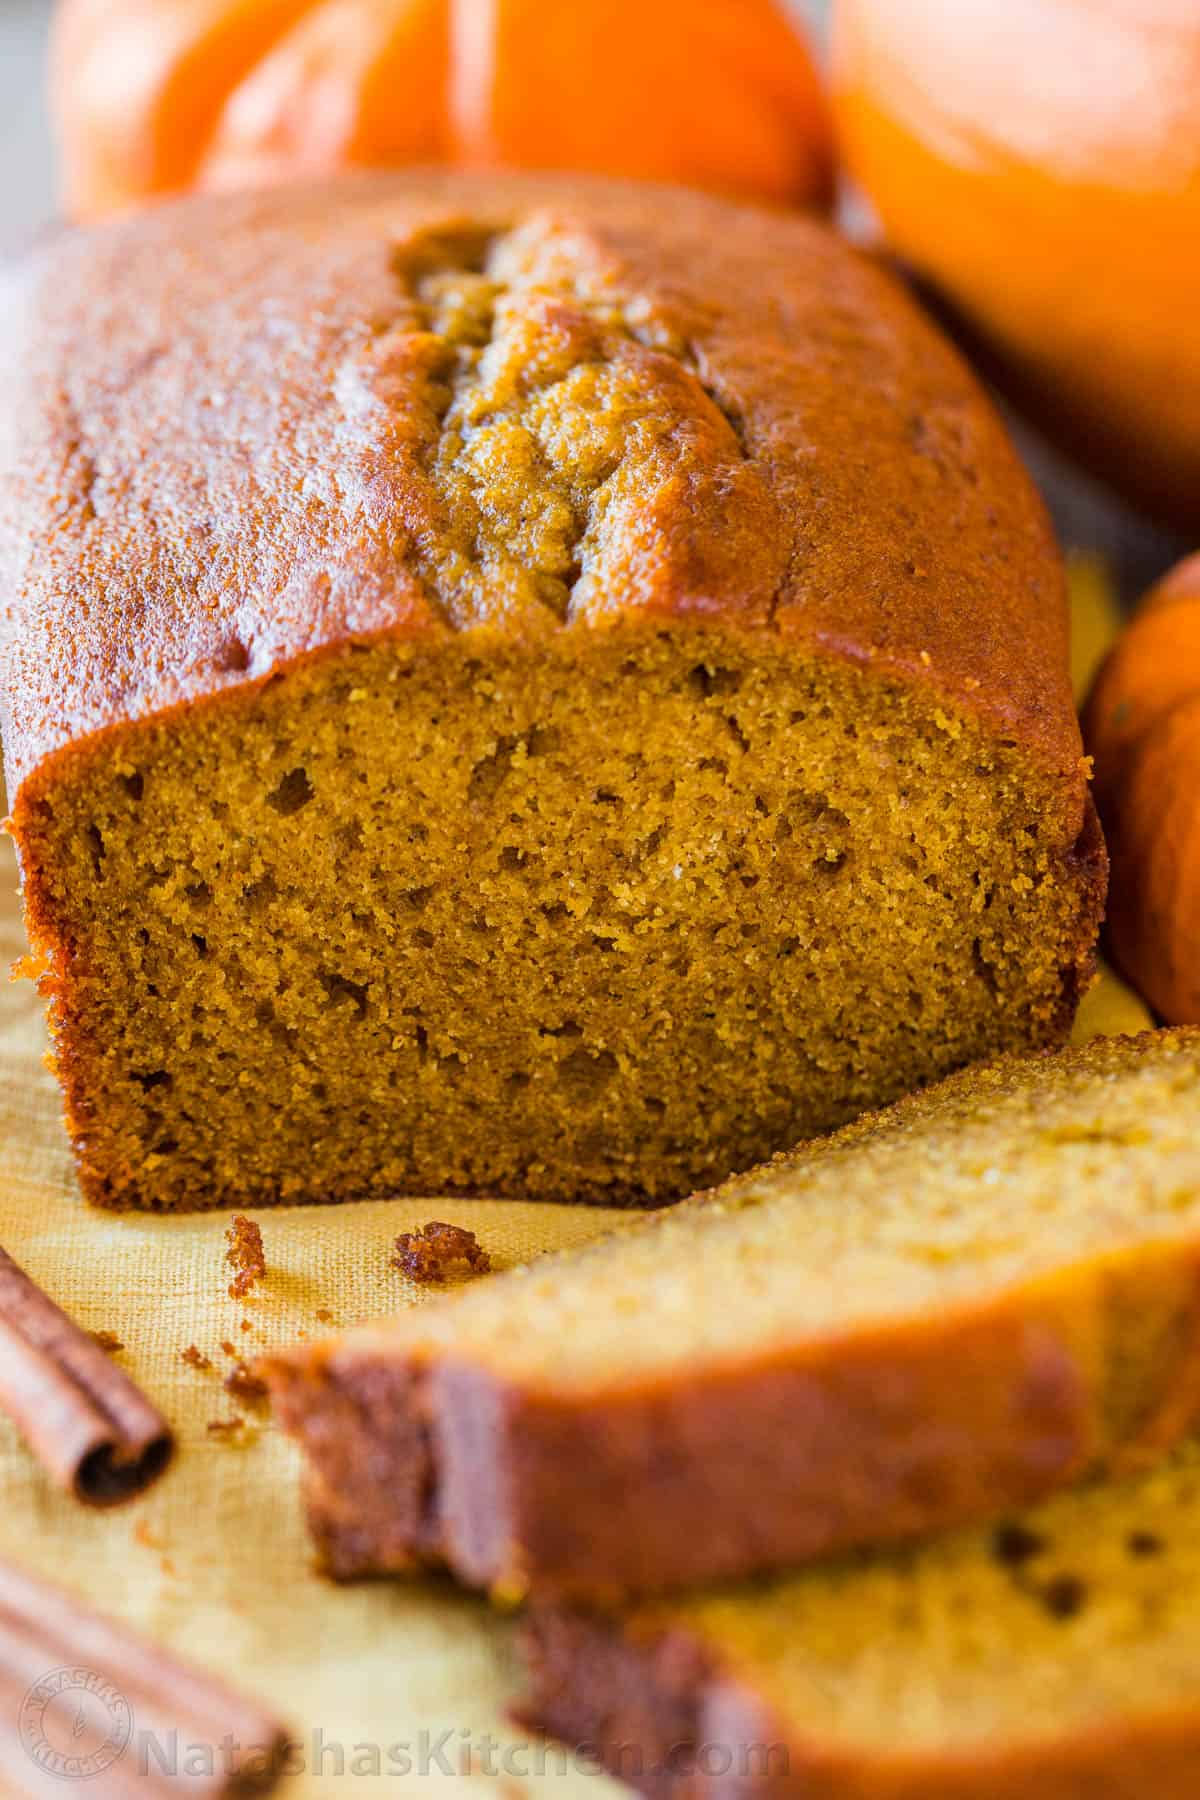 Pumpkin Bread Recipe Natashaskitchen Com